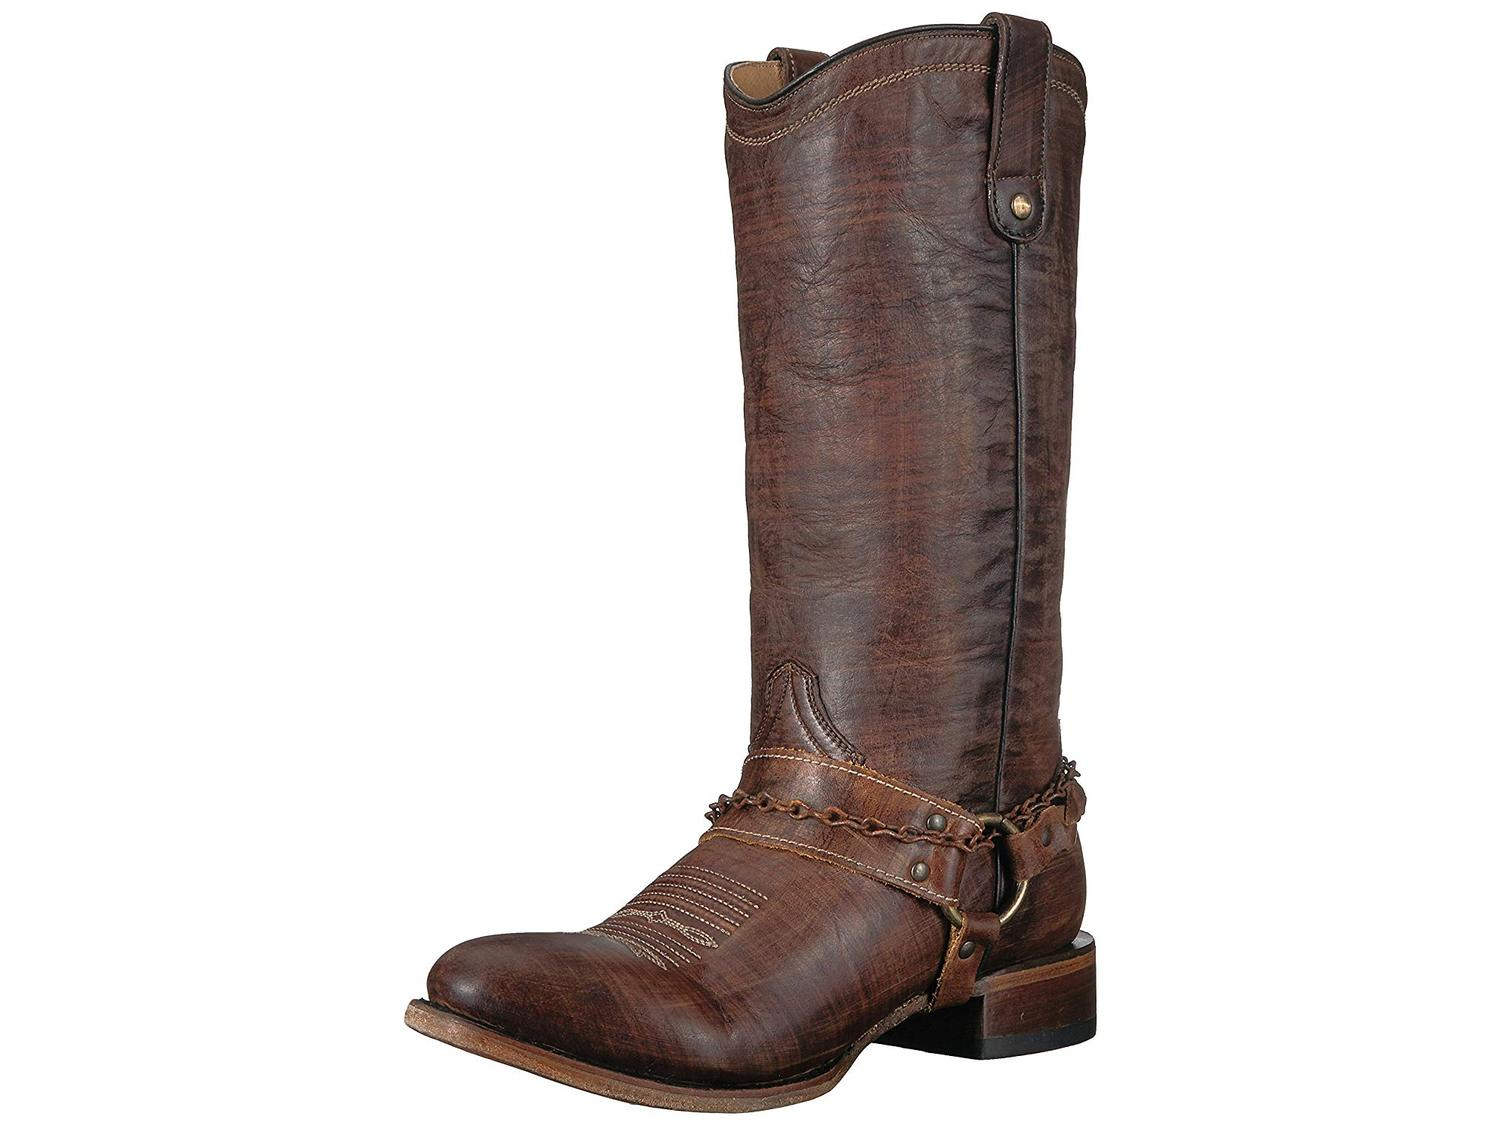 97edc3436414d Roper Womens Selah Leather Round Toe Mid-Calf Cowboy Boots